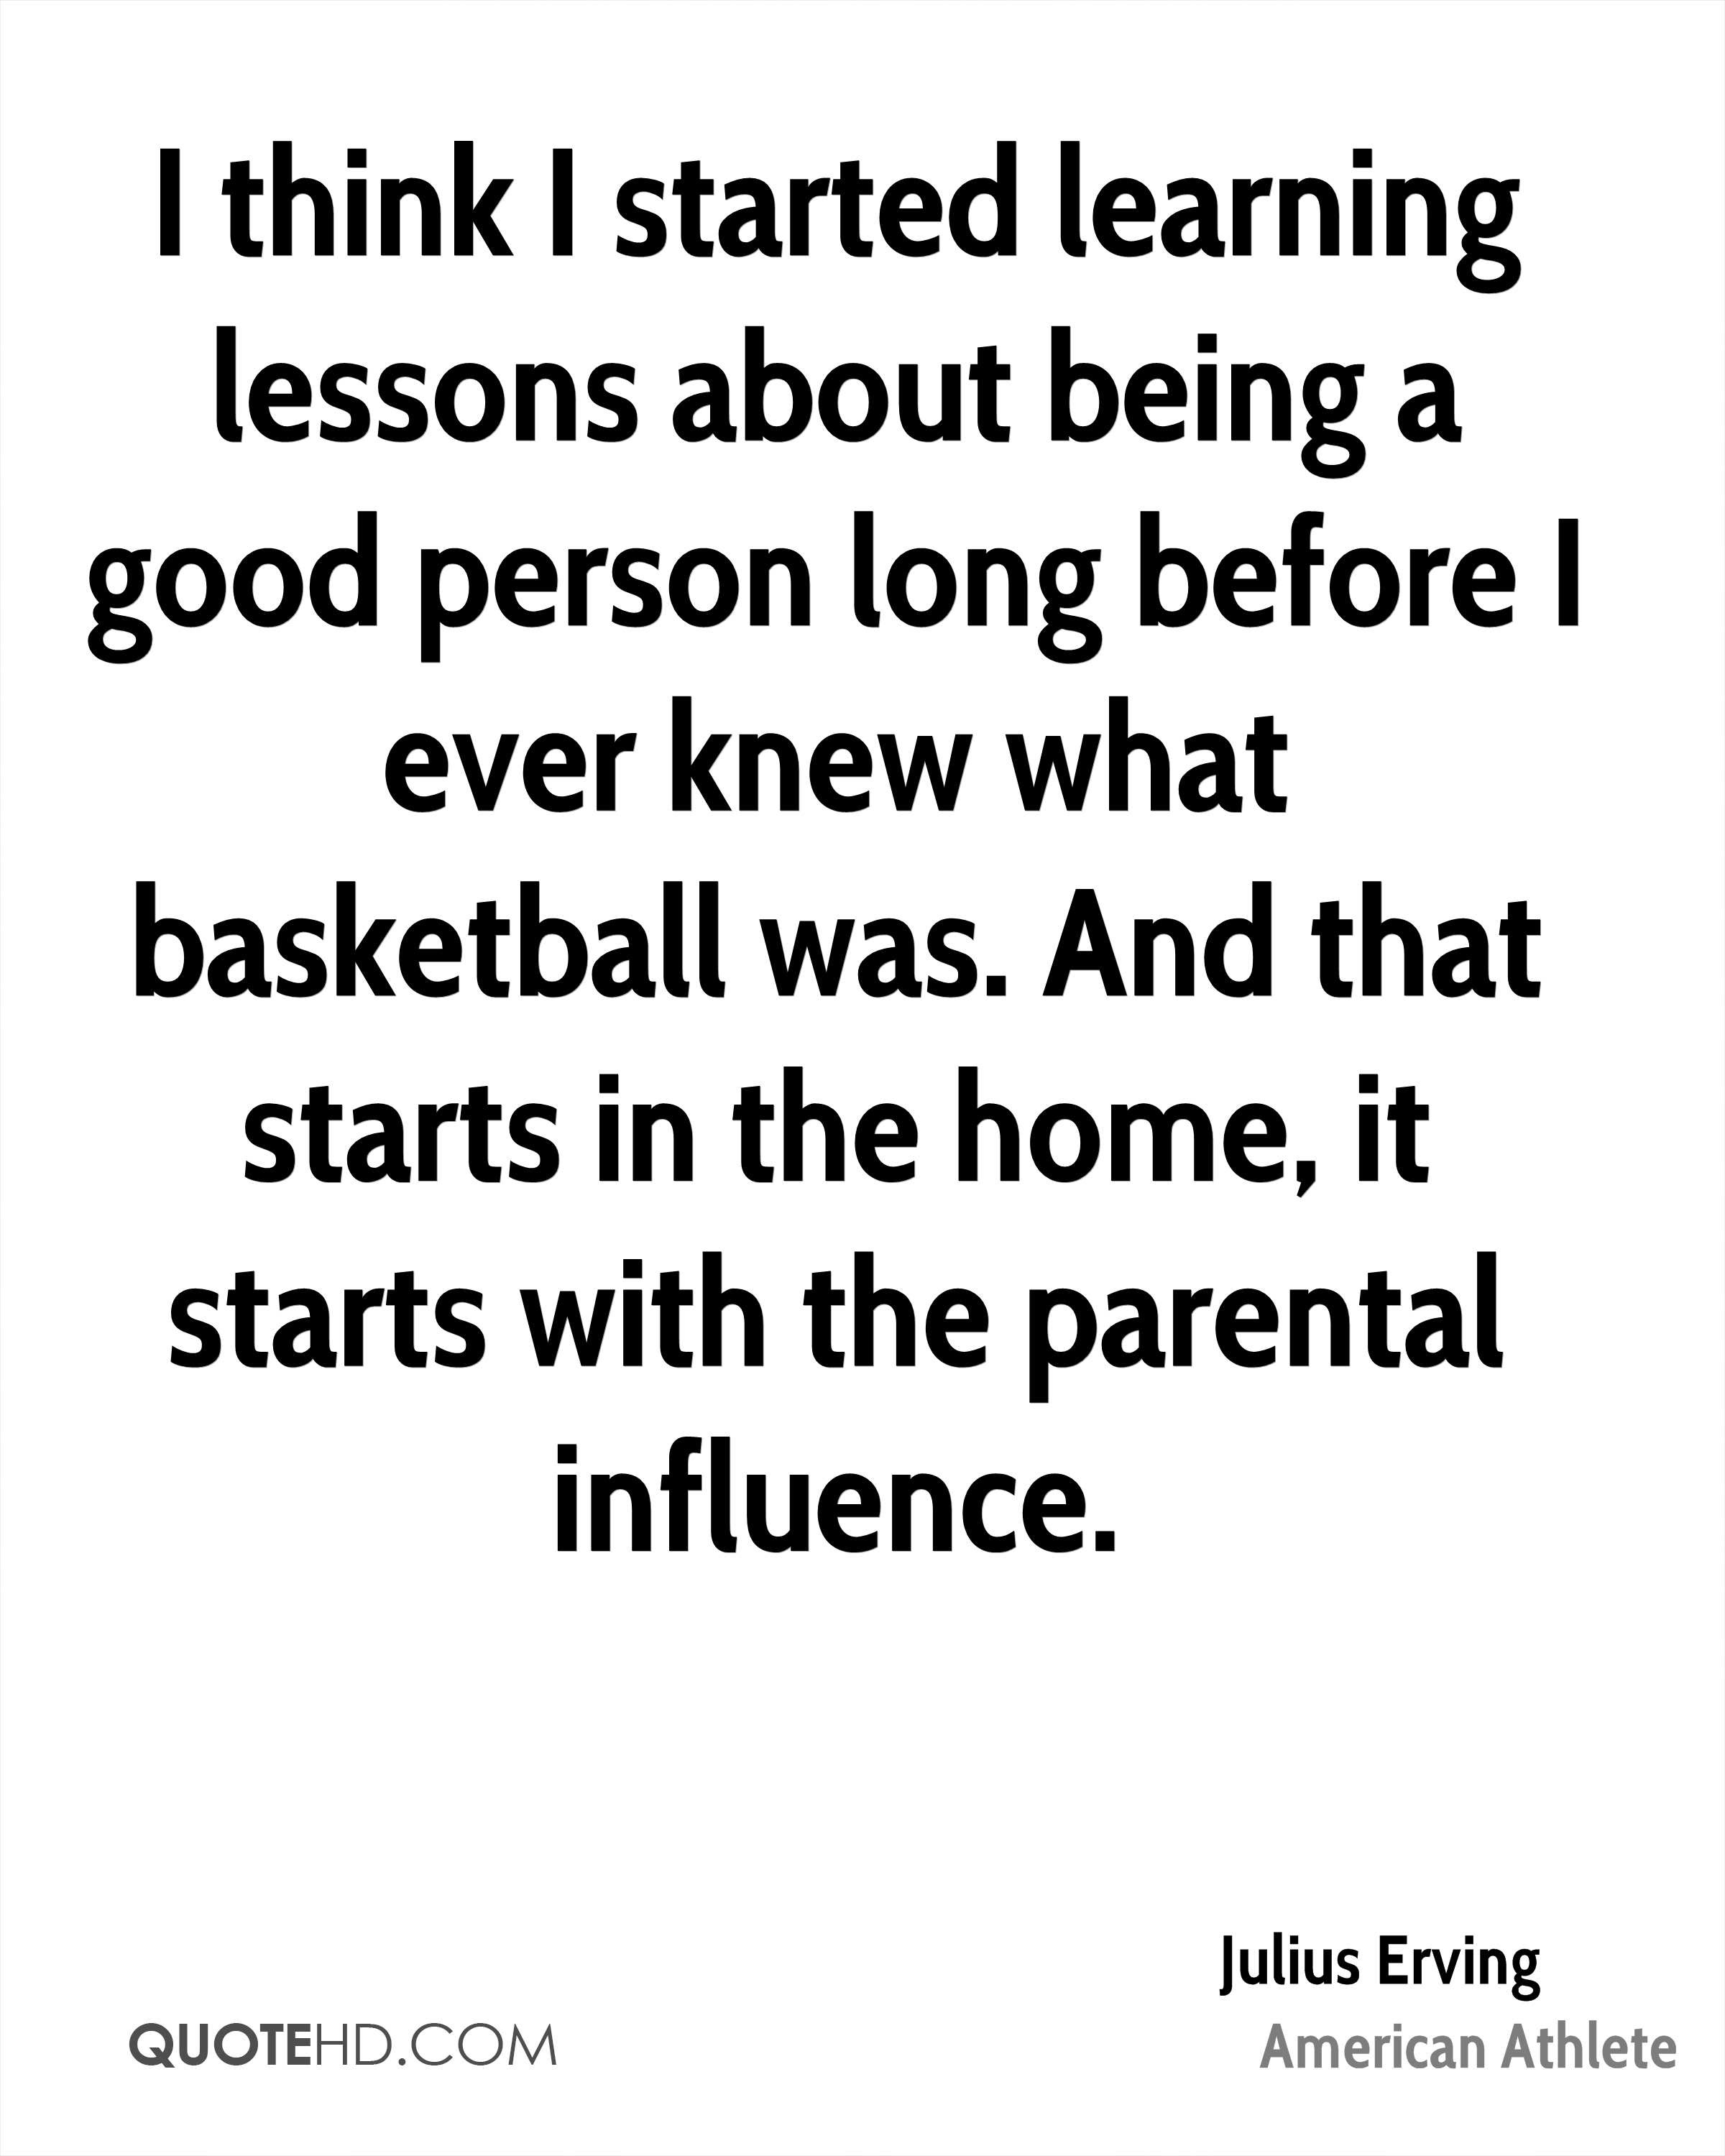 Julius Erving Home Quotes Quotehd